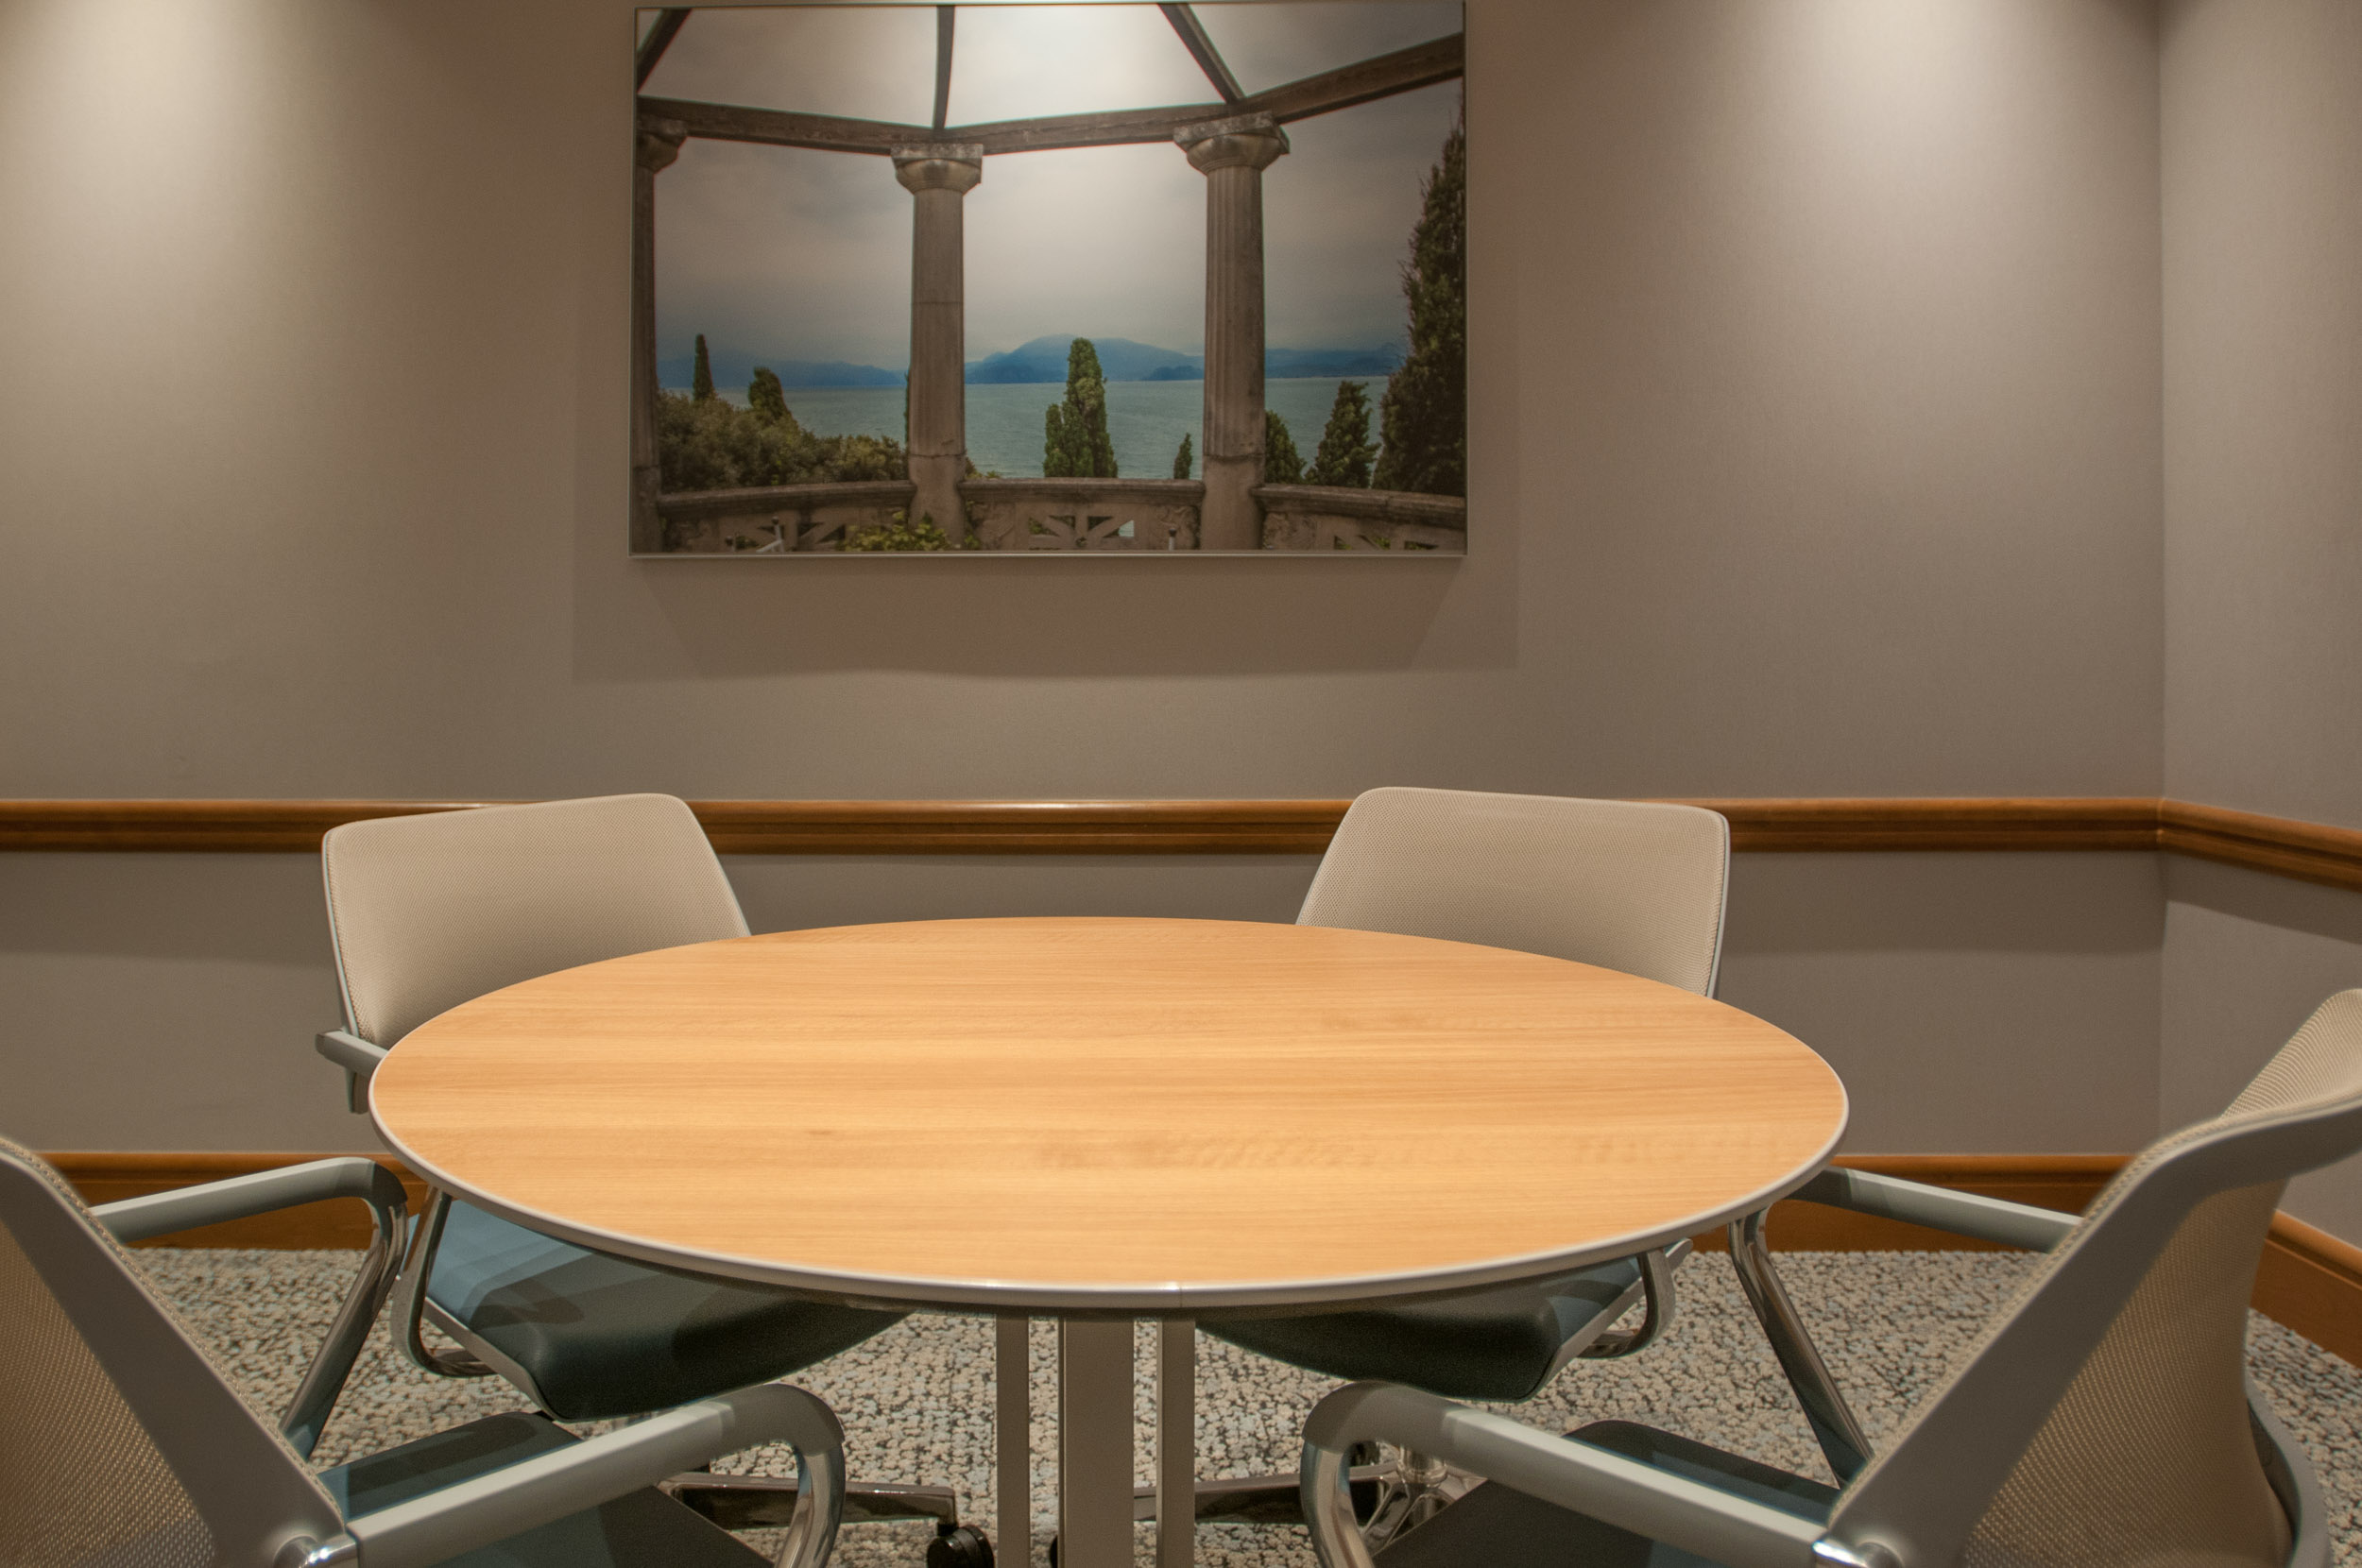 Palm Beach Meeting Room Rental for 4